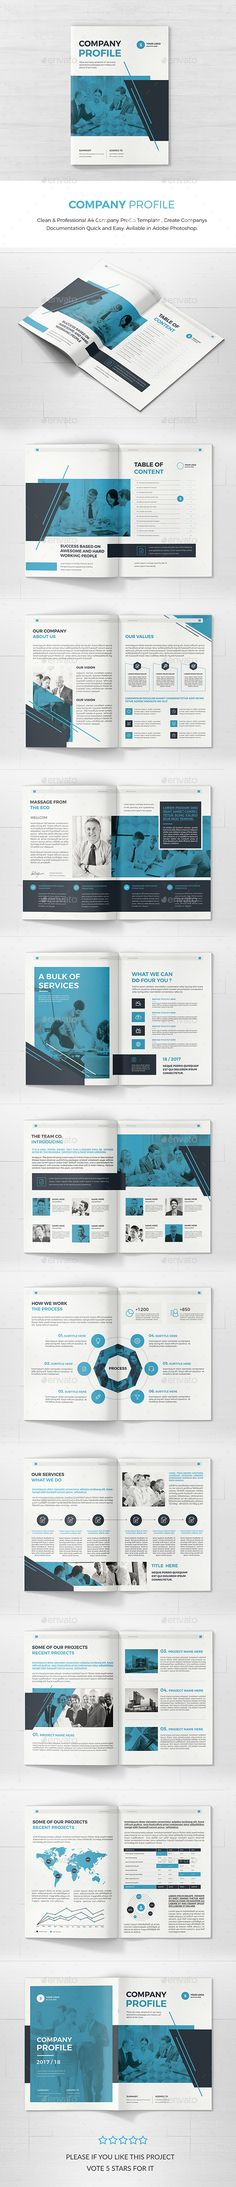 Company Brochure Brochures, Corporate brochure and Brochure template - profile company template